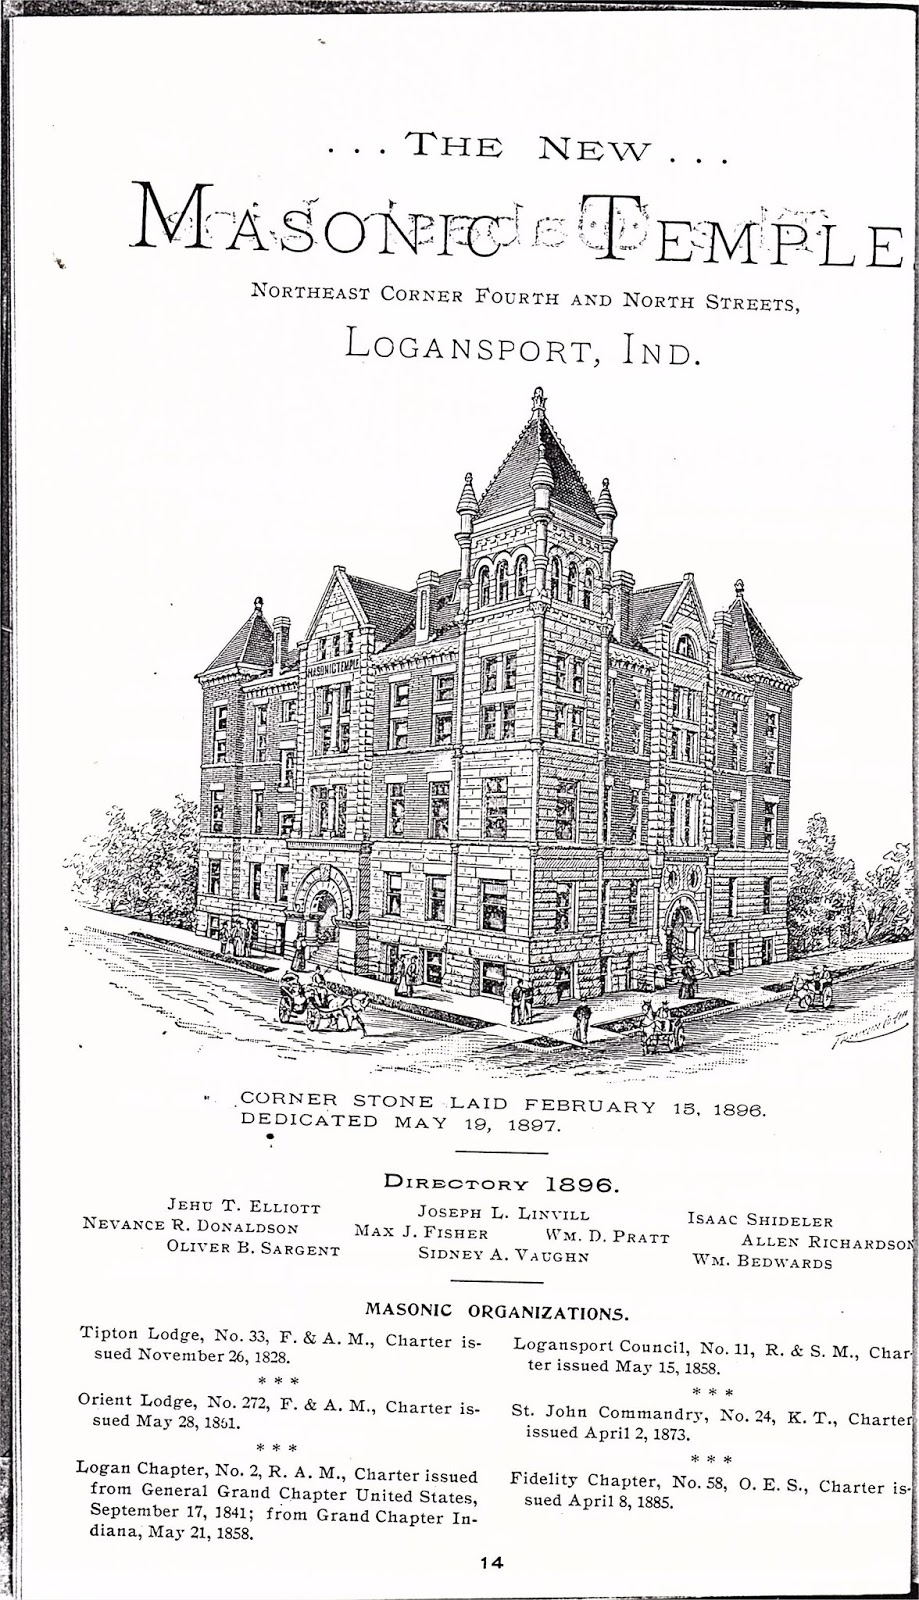 Cass County Historical Society and Museum: The Masonic